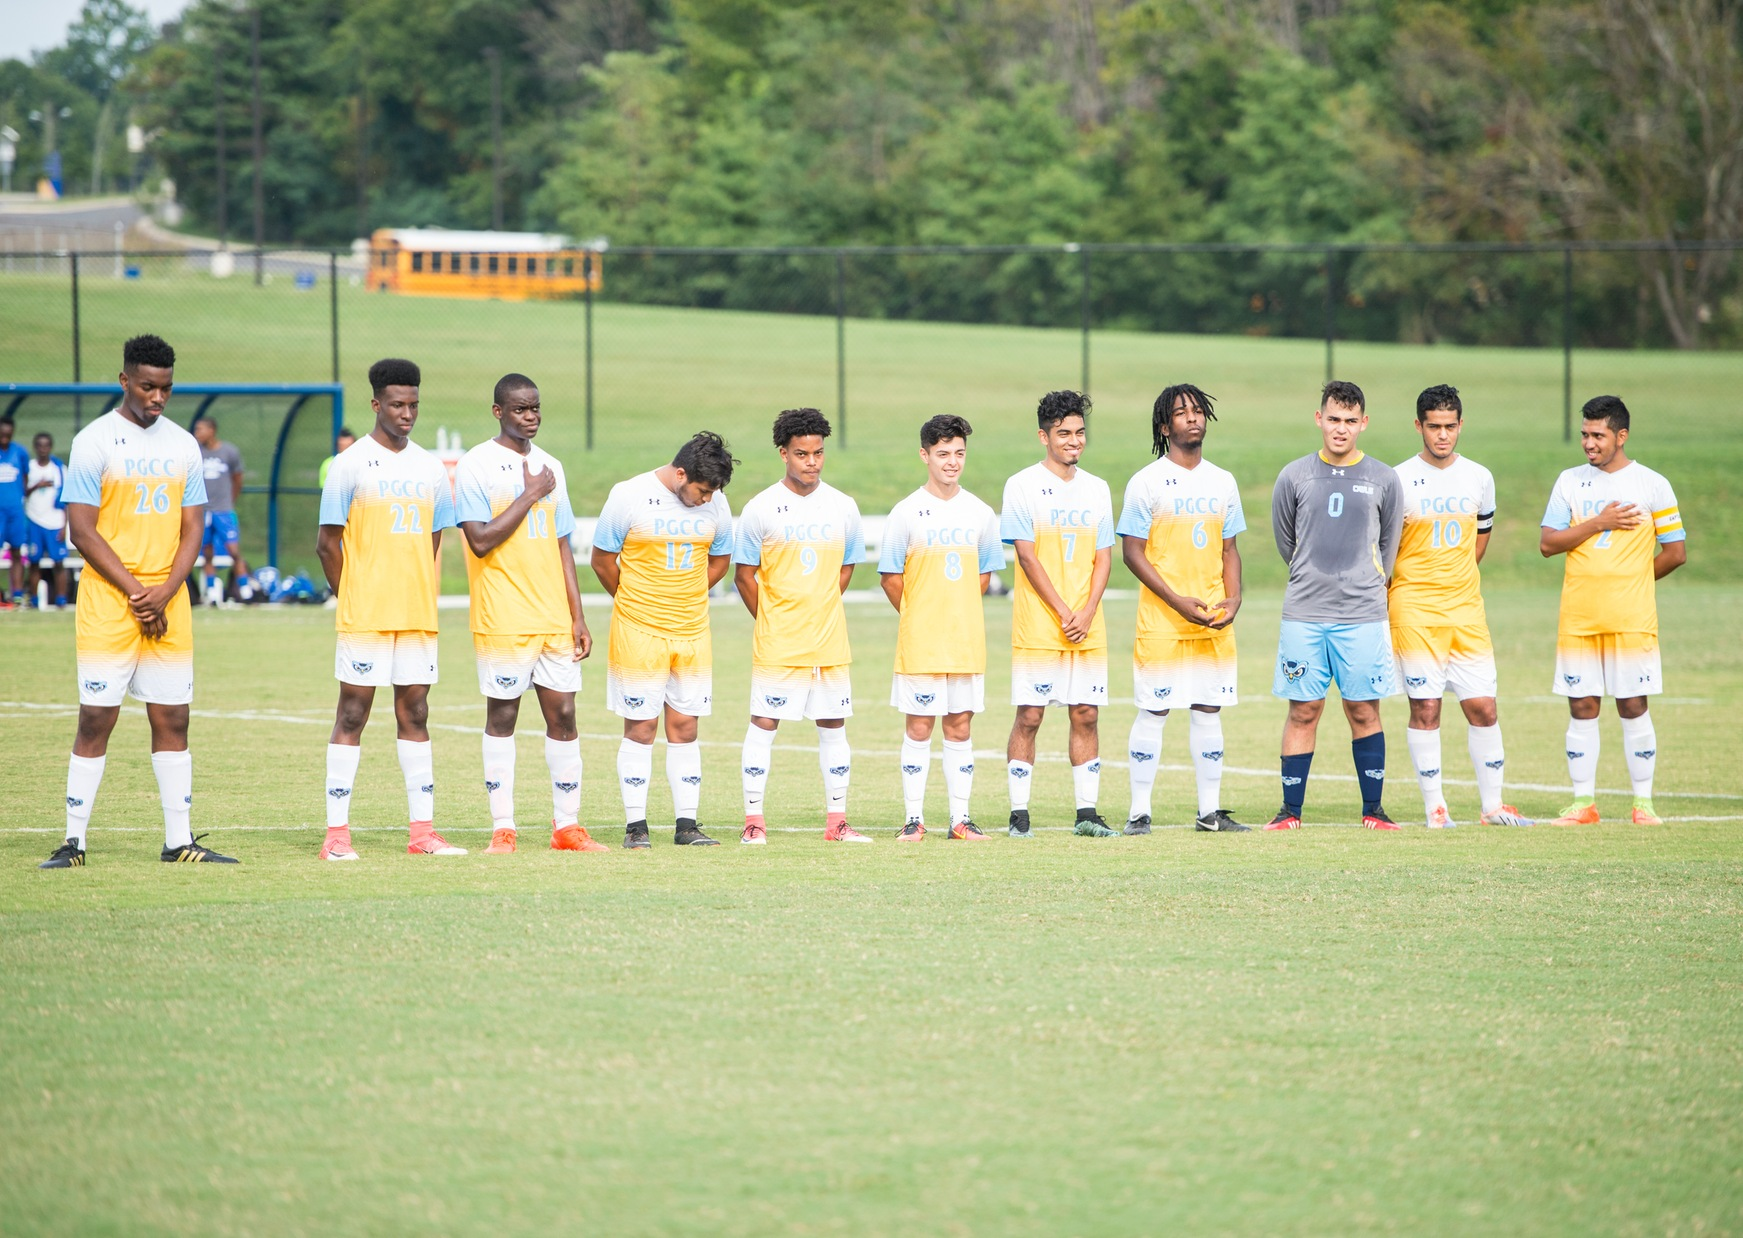 Prince George's Men's Soccer Ranked Ninth In NJCAA Division III Men's Soccer Rankings